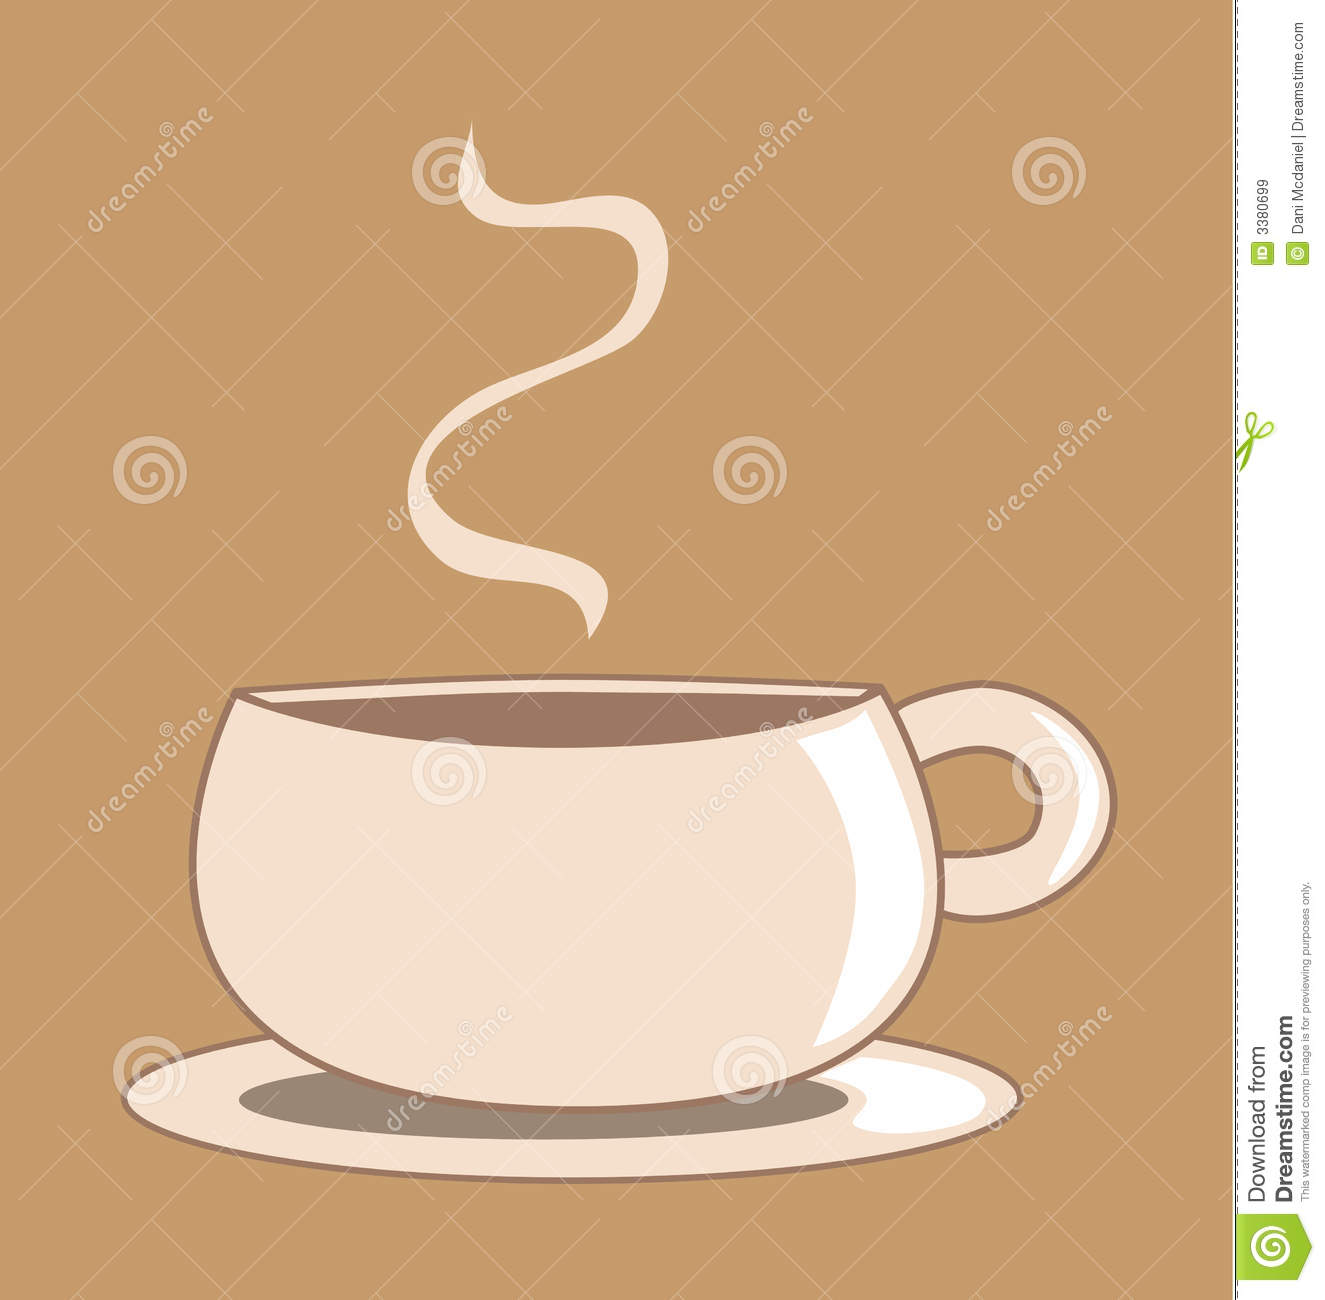 Graphic Coffee Cup Royalty Free Stock Images - Image: 3380699